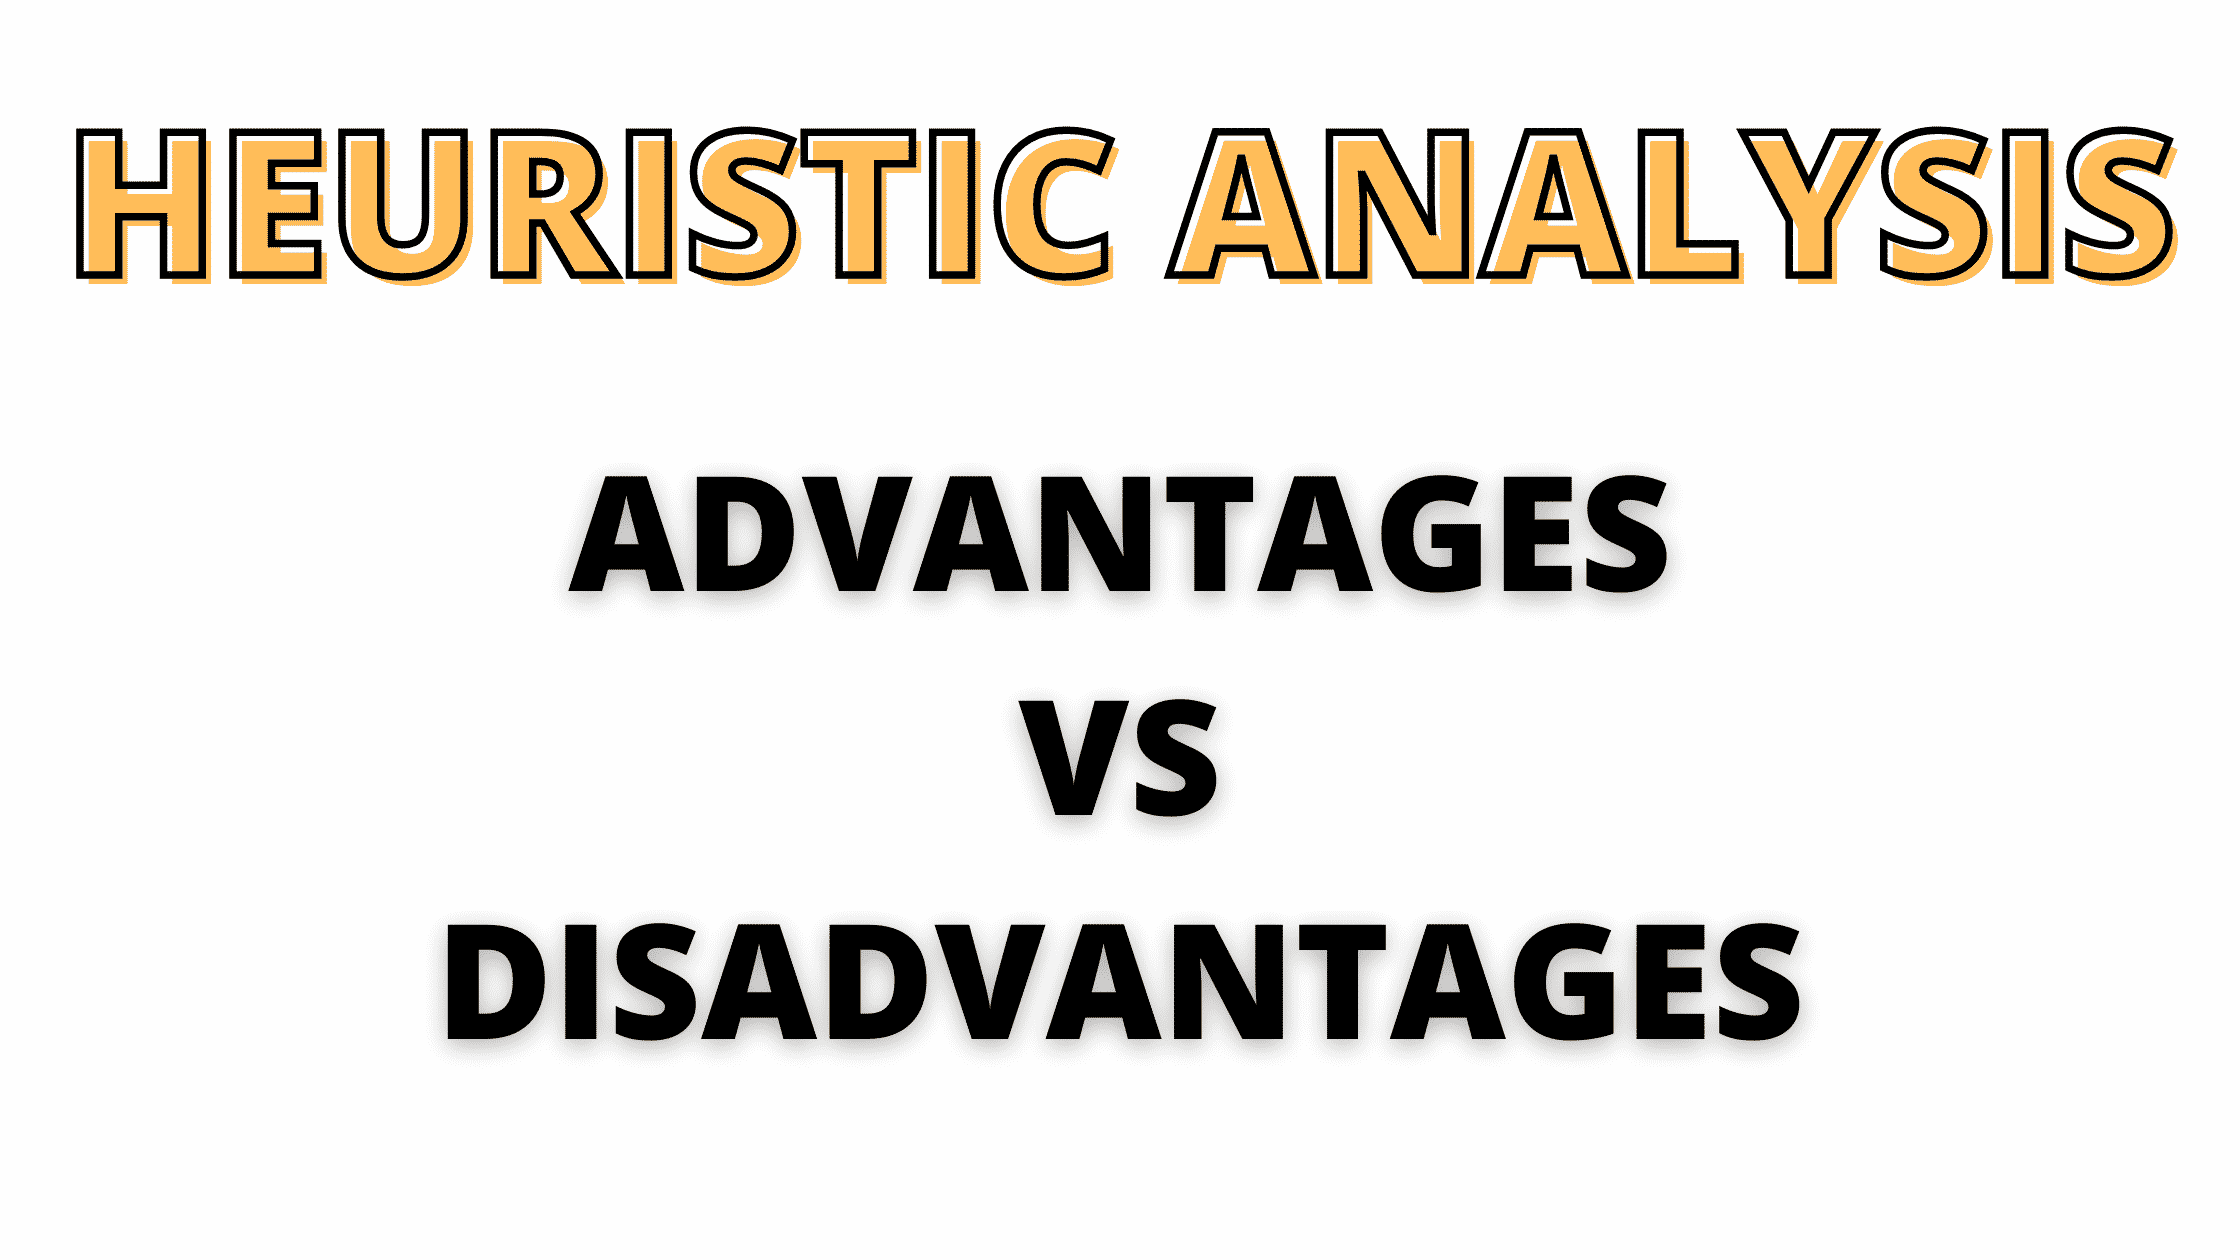 Advantages and disadvantages of heuristic analysis